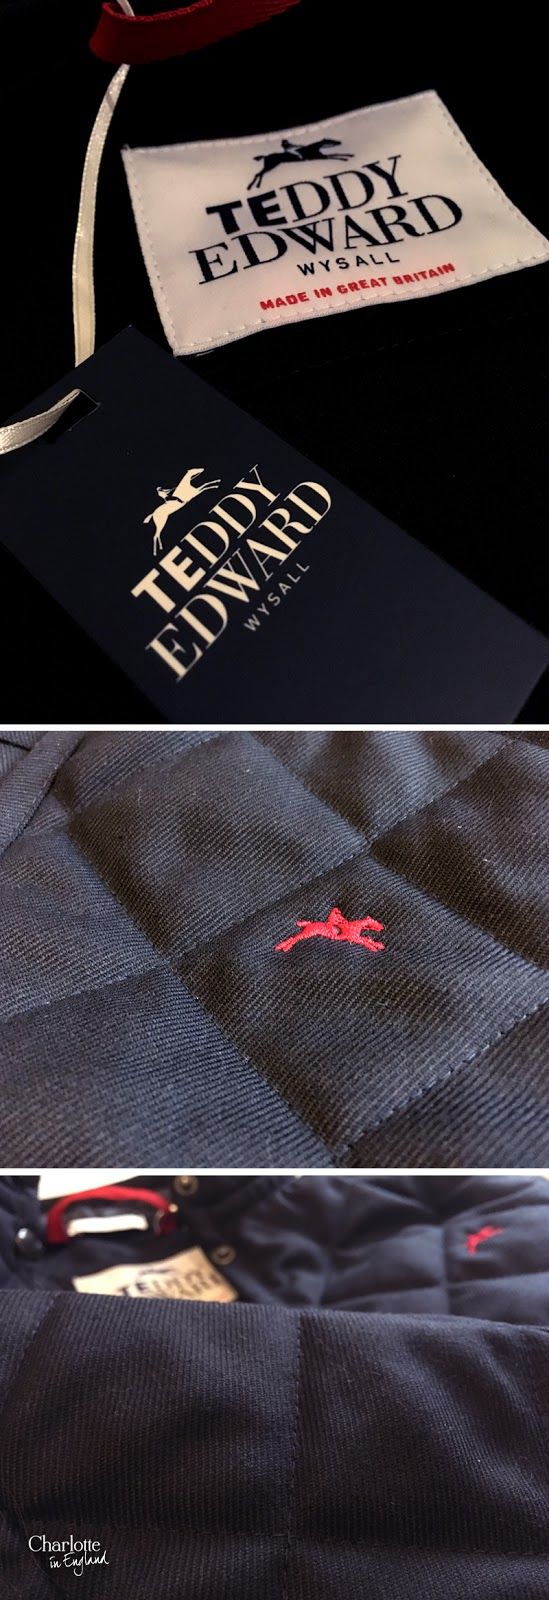 Teddy Edward: Blankney Rugby Shirt & Belvoir Coat